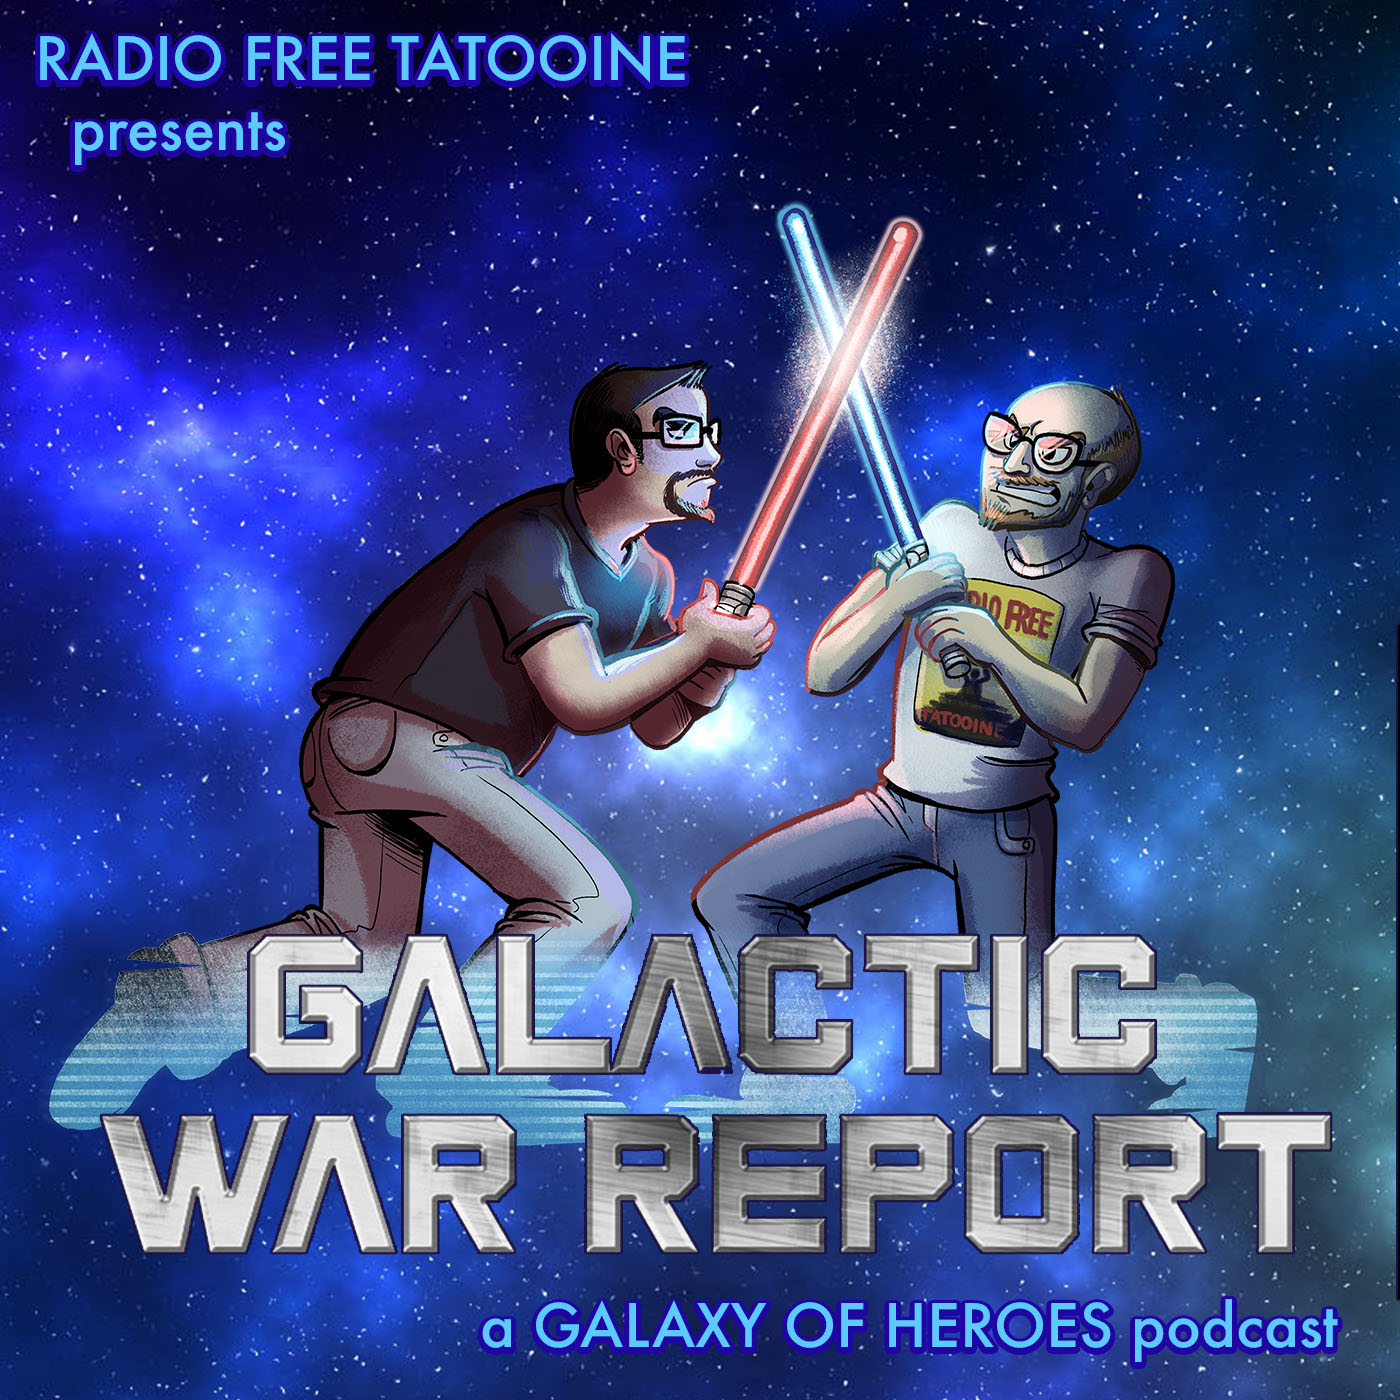 Galactic War Room Radio Free Tatooine